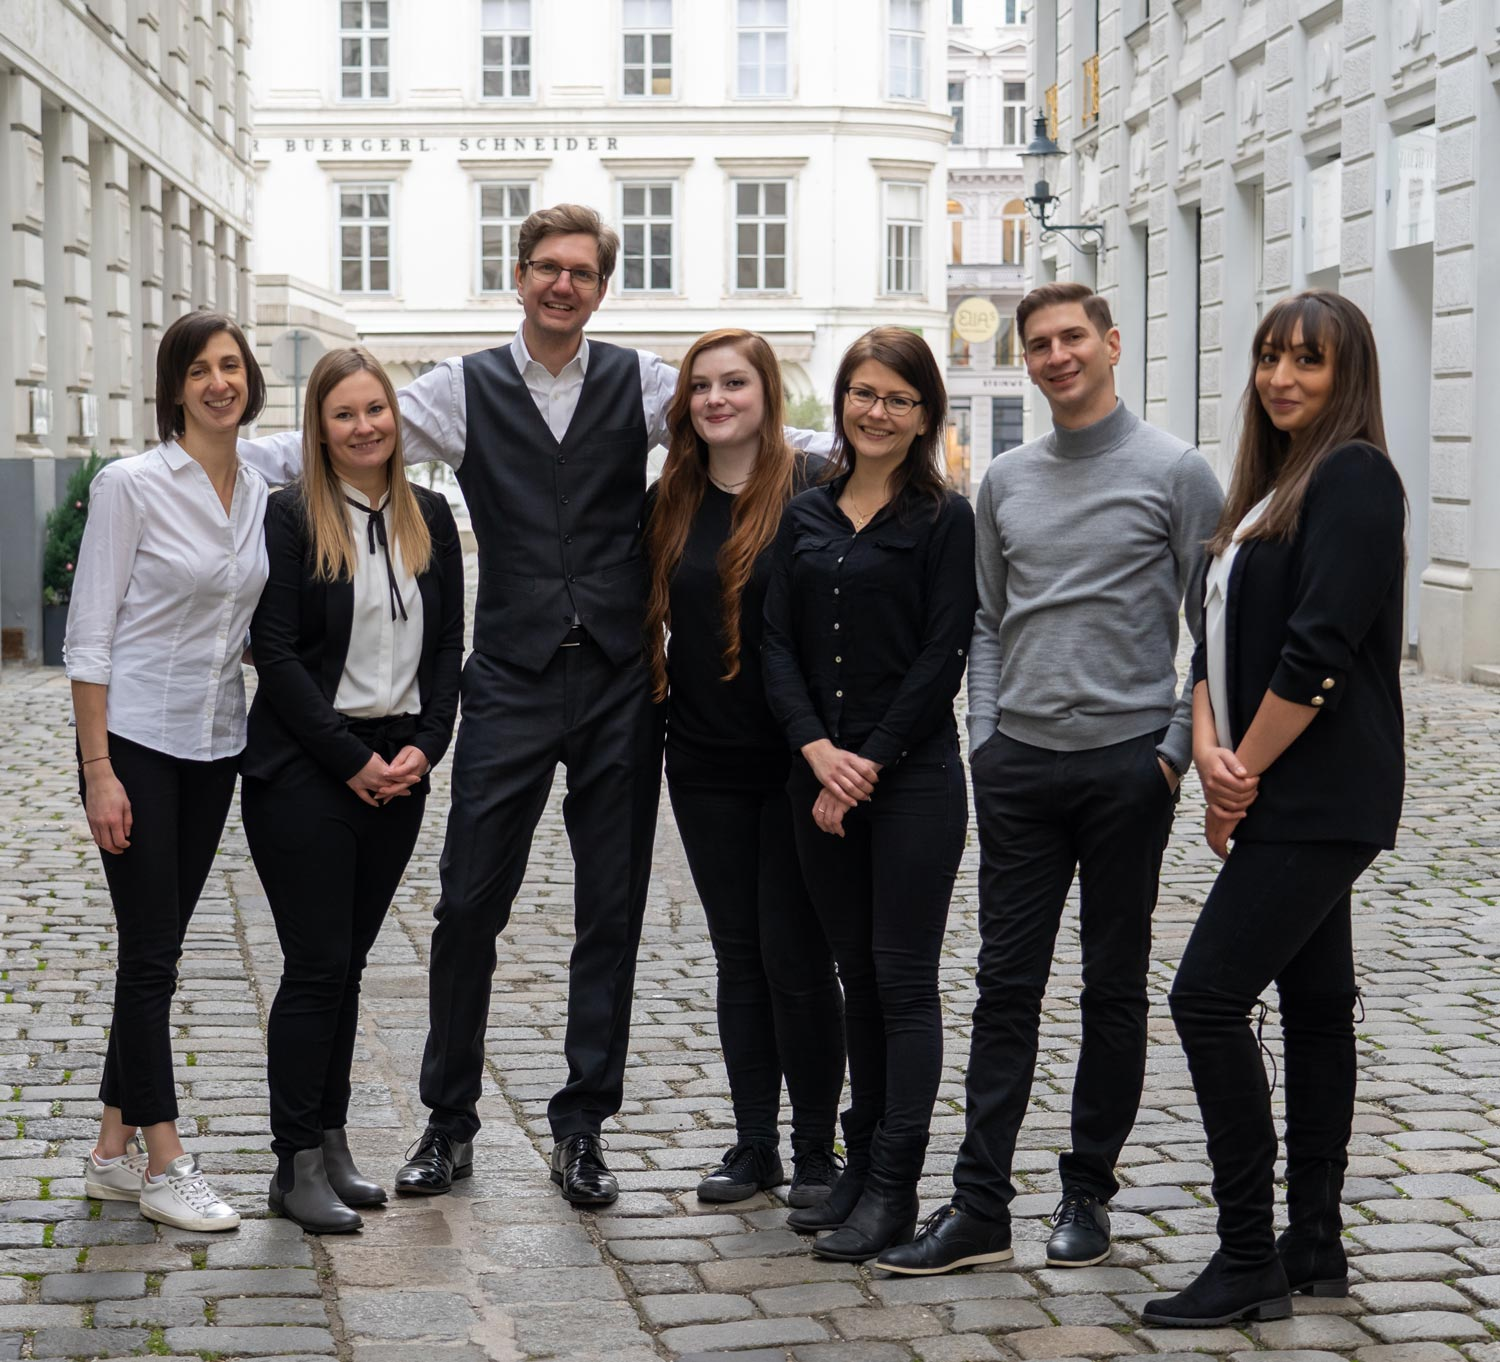 convival Immobilien second group photo